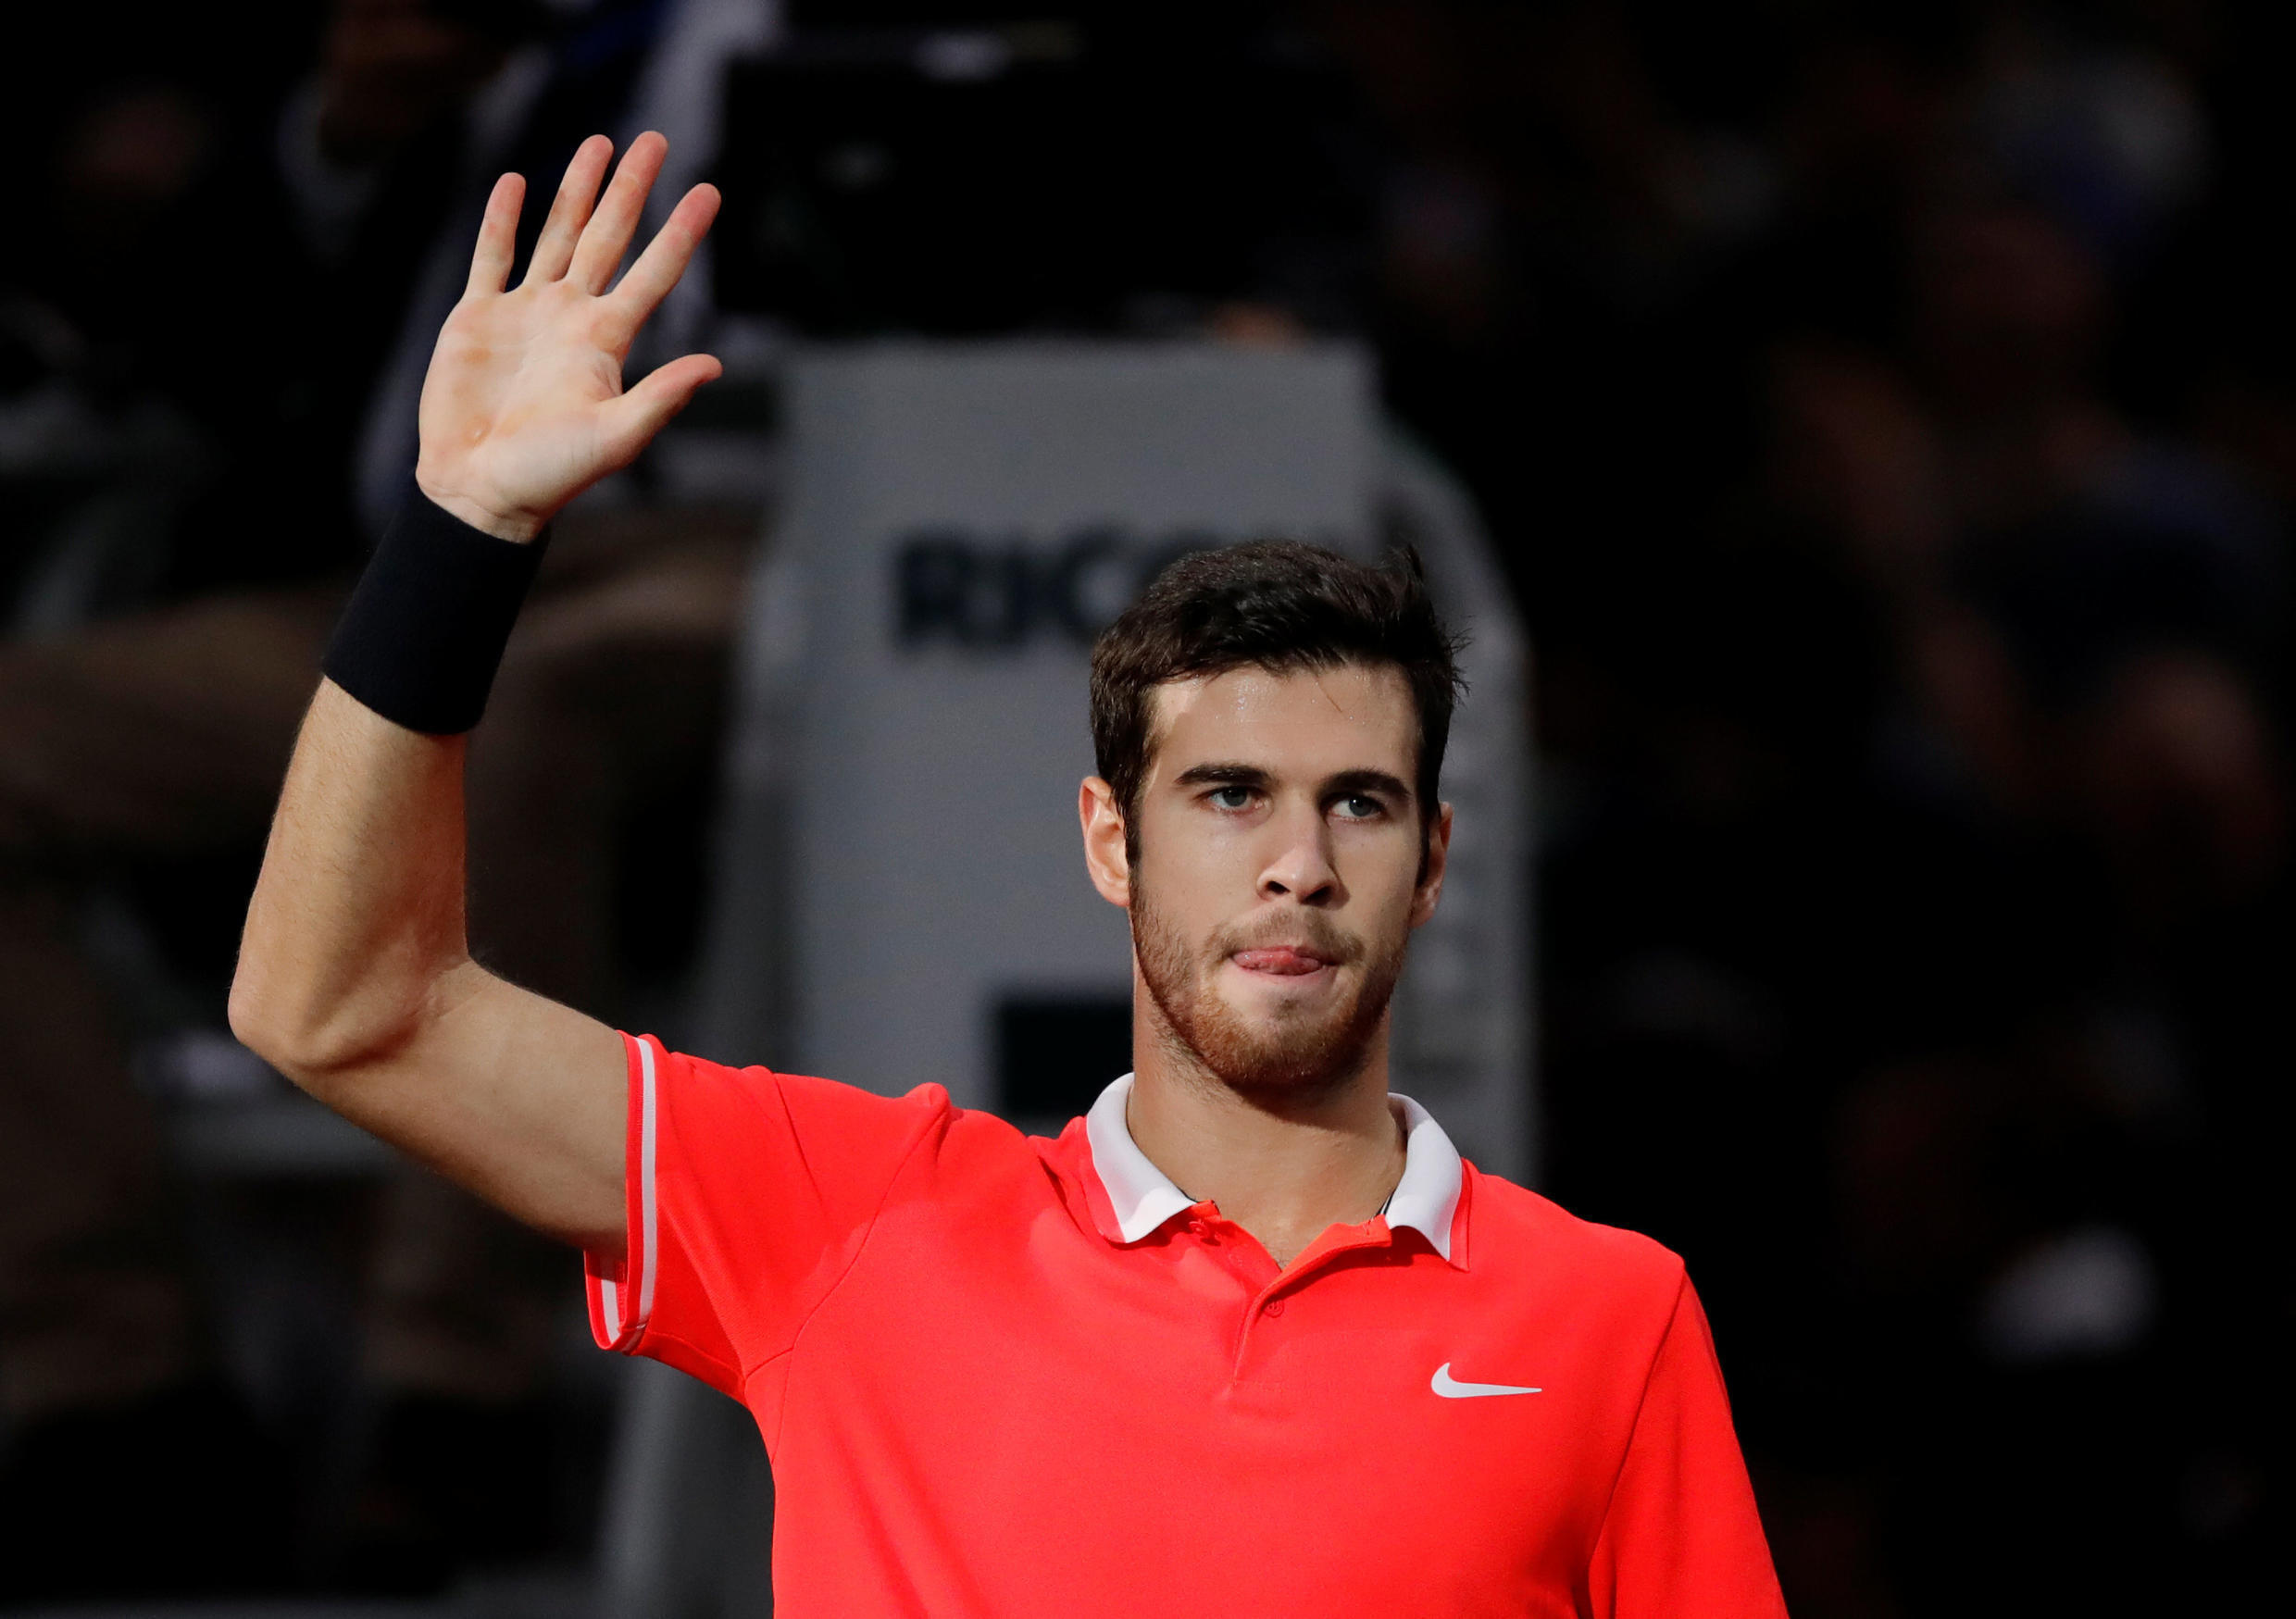 Karen Khachanov will play in his first final at a Masters event on Sunday.